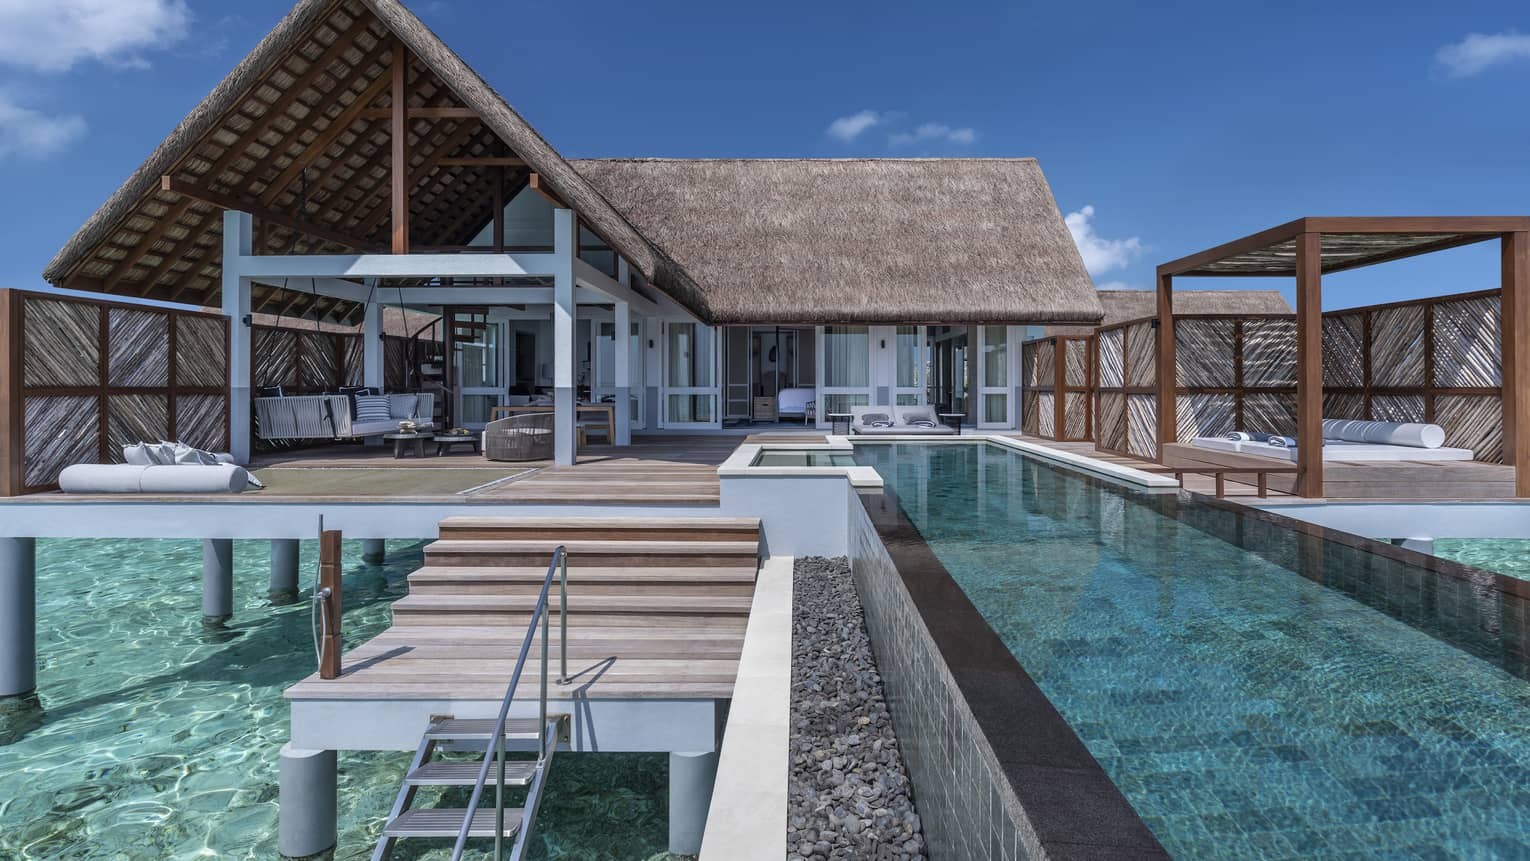 Over-water villas with private pools and furnished decks